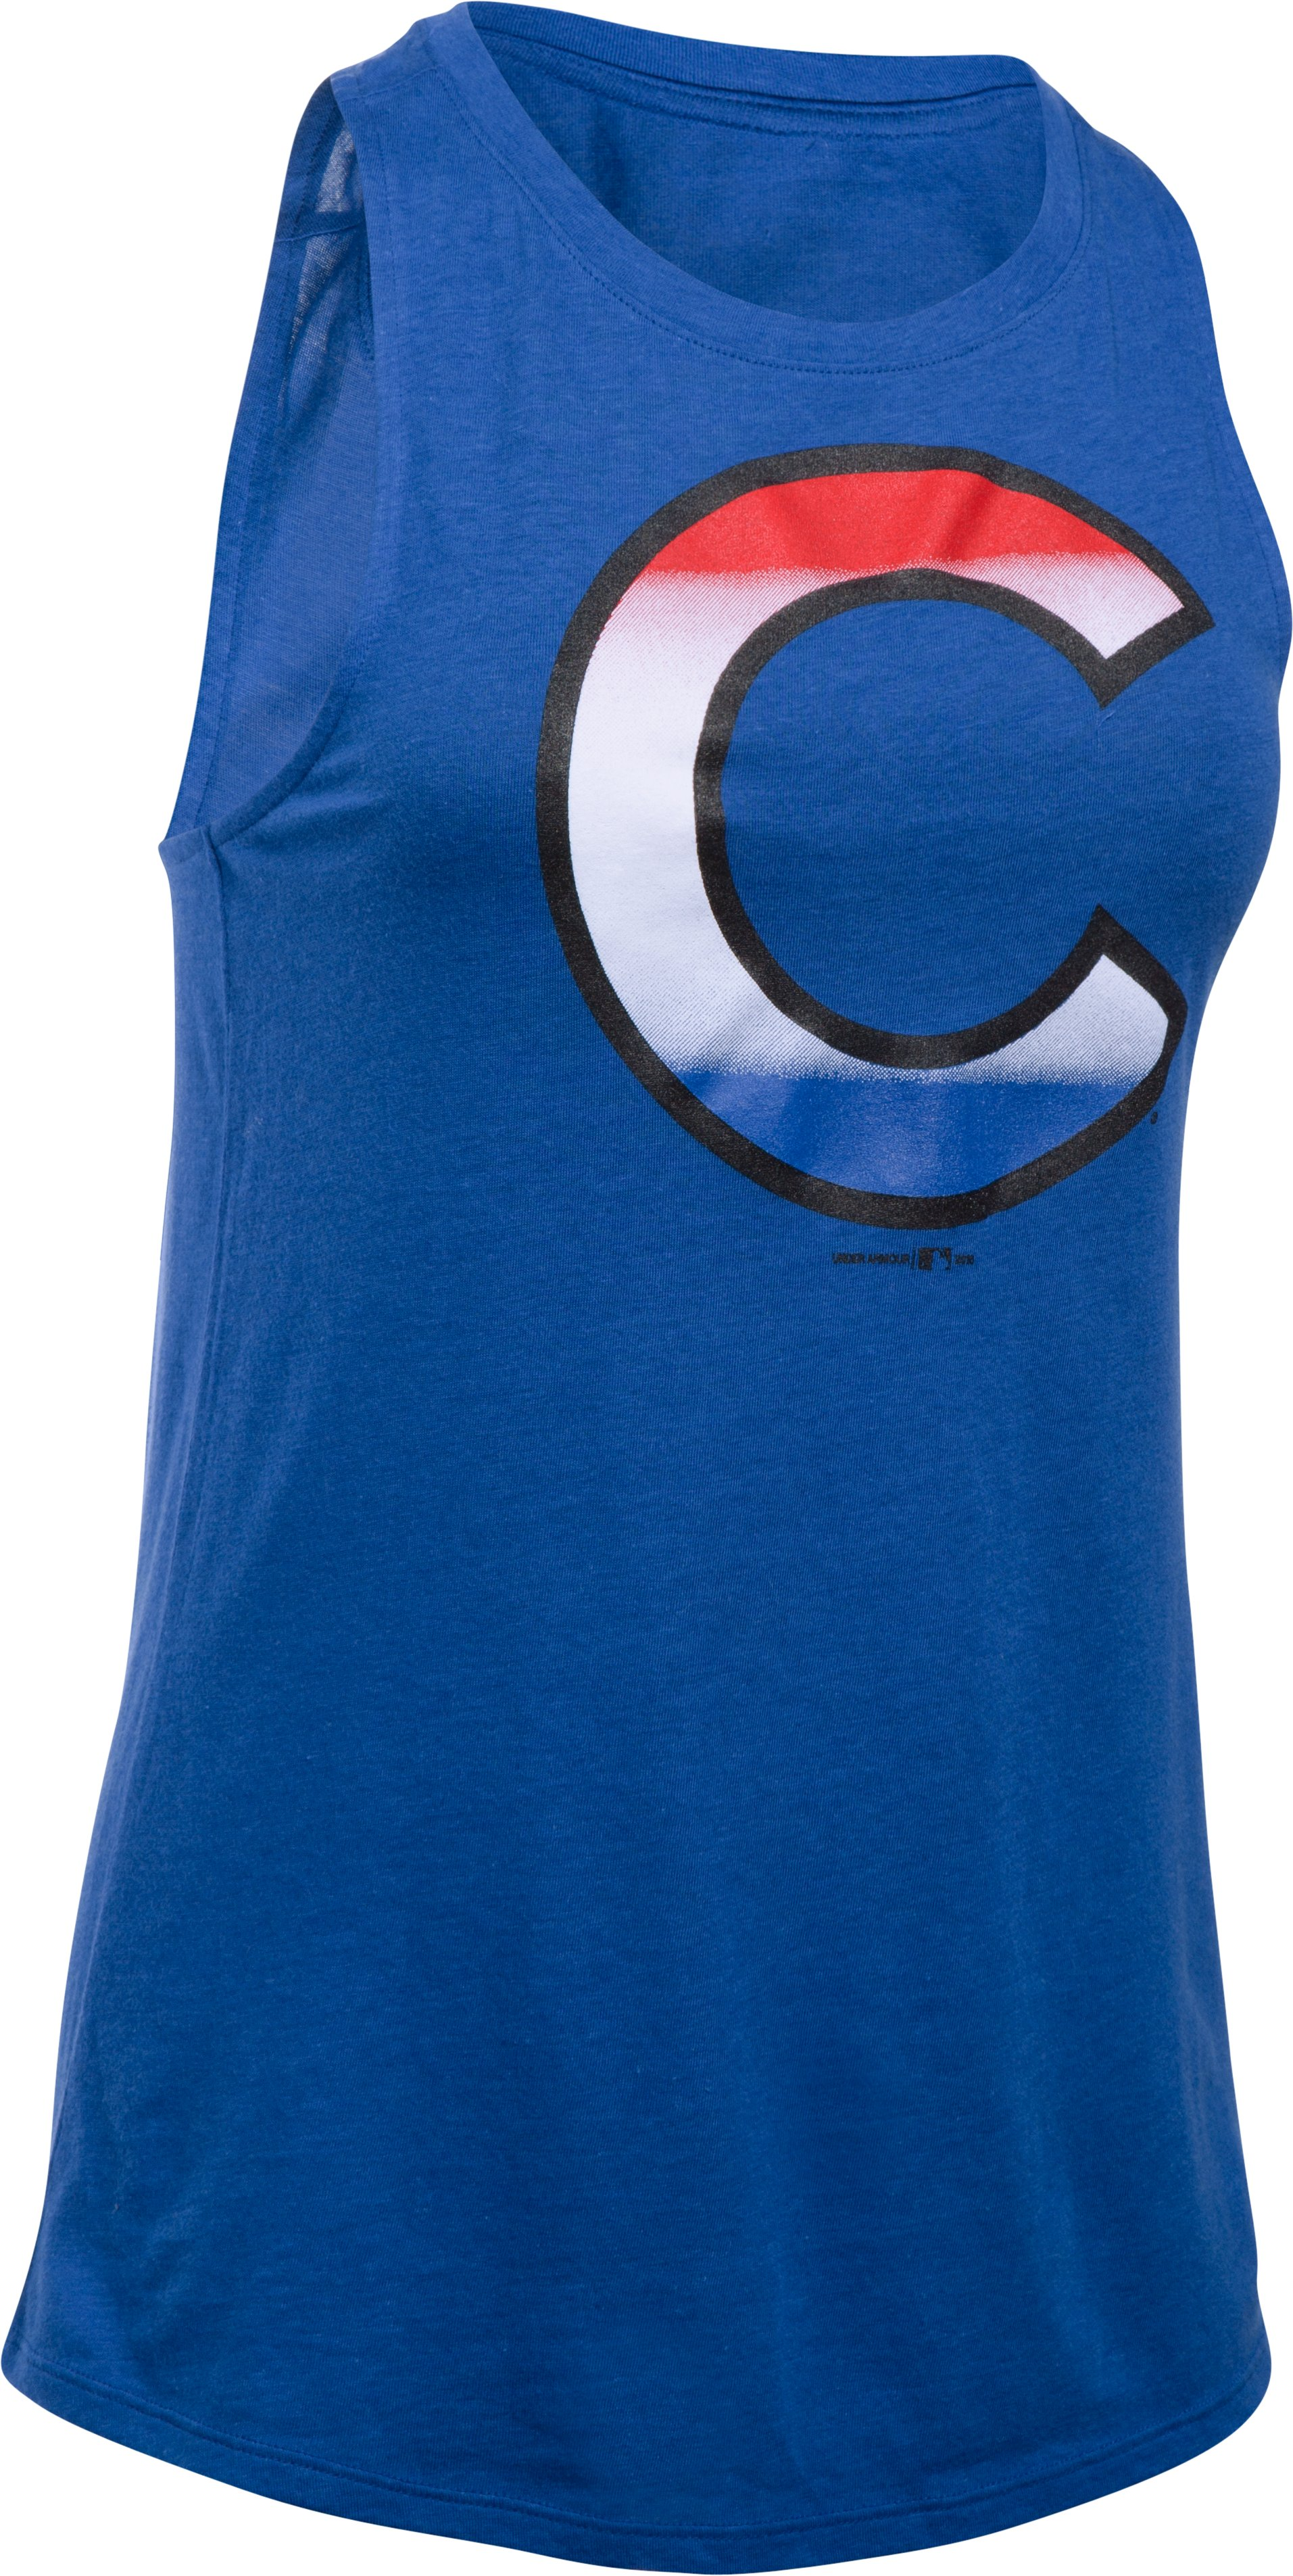 Women's Chicago Cubs 4th of July Cutout Tank, Royal